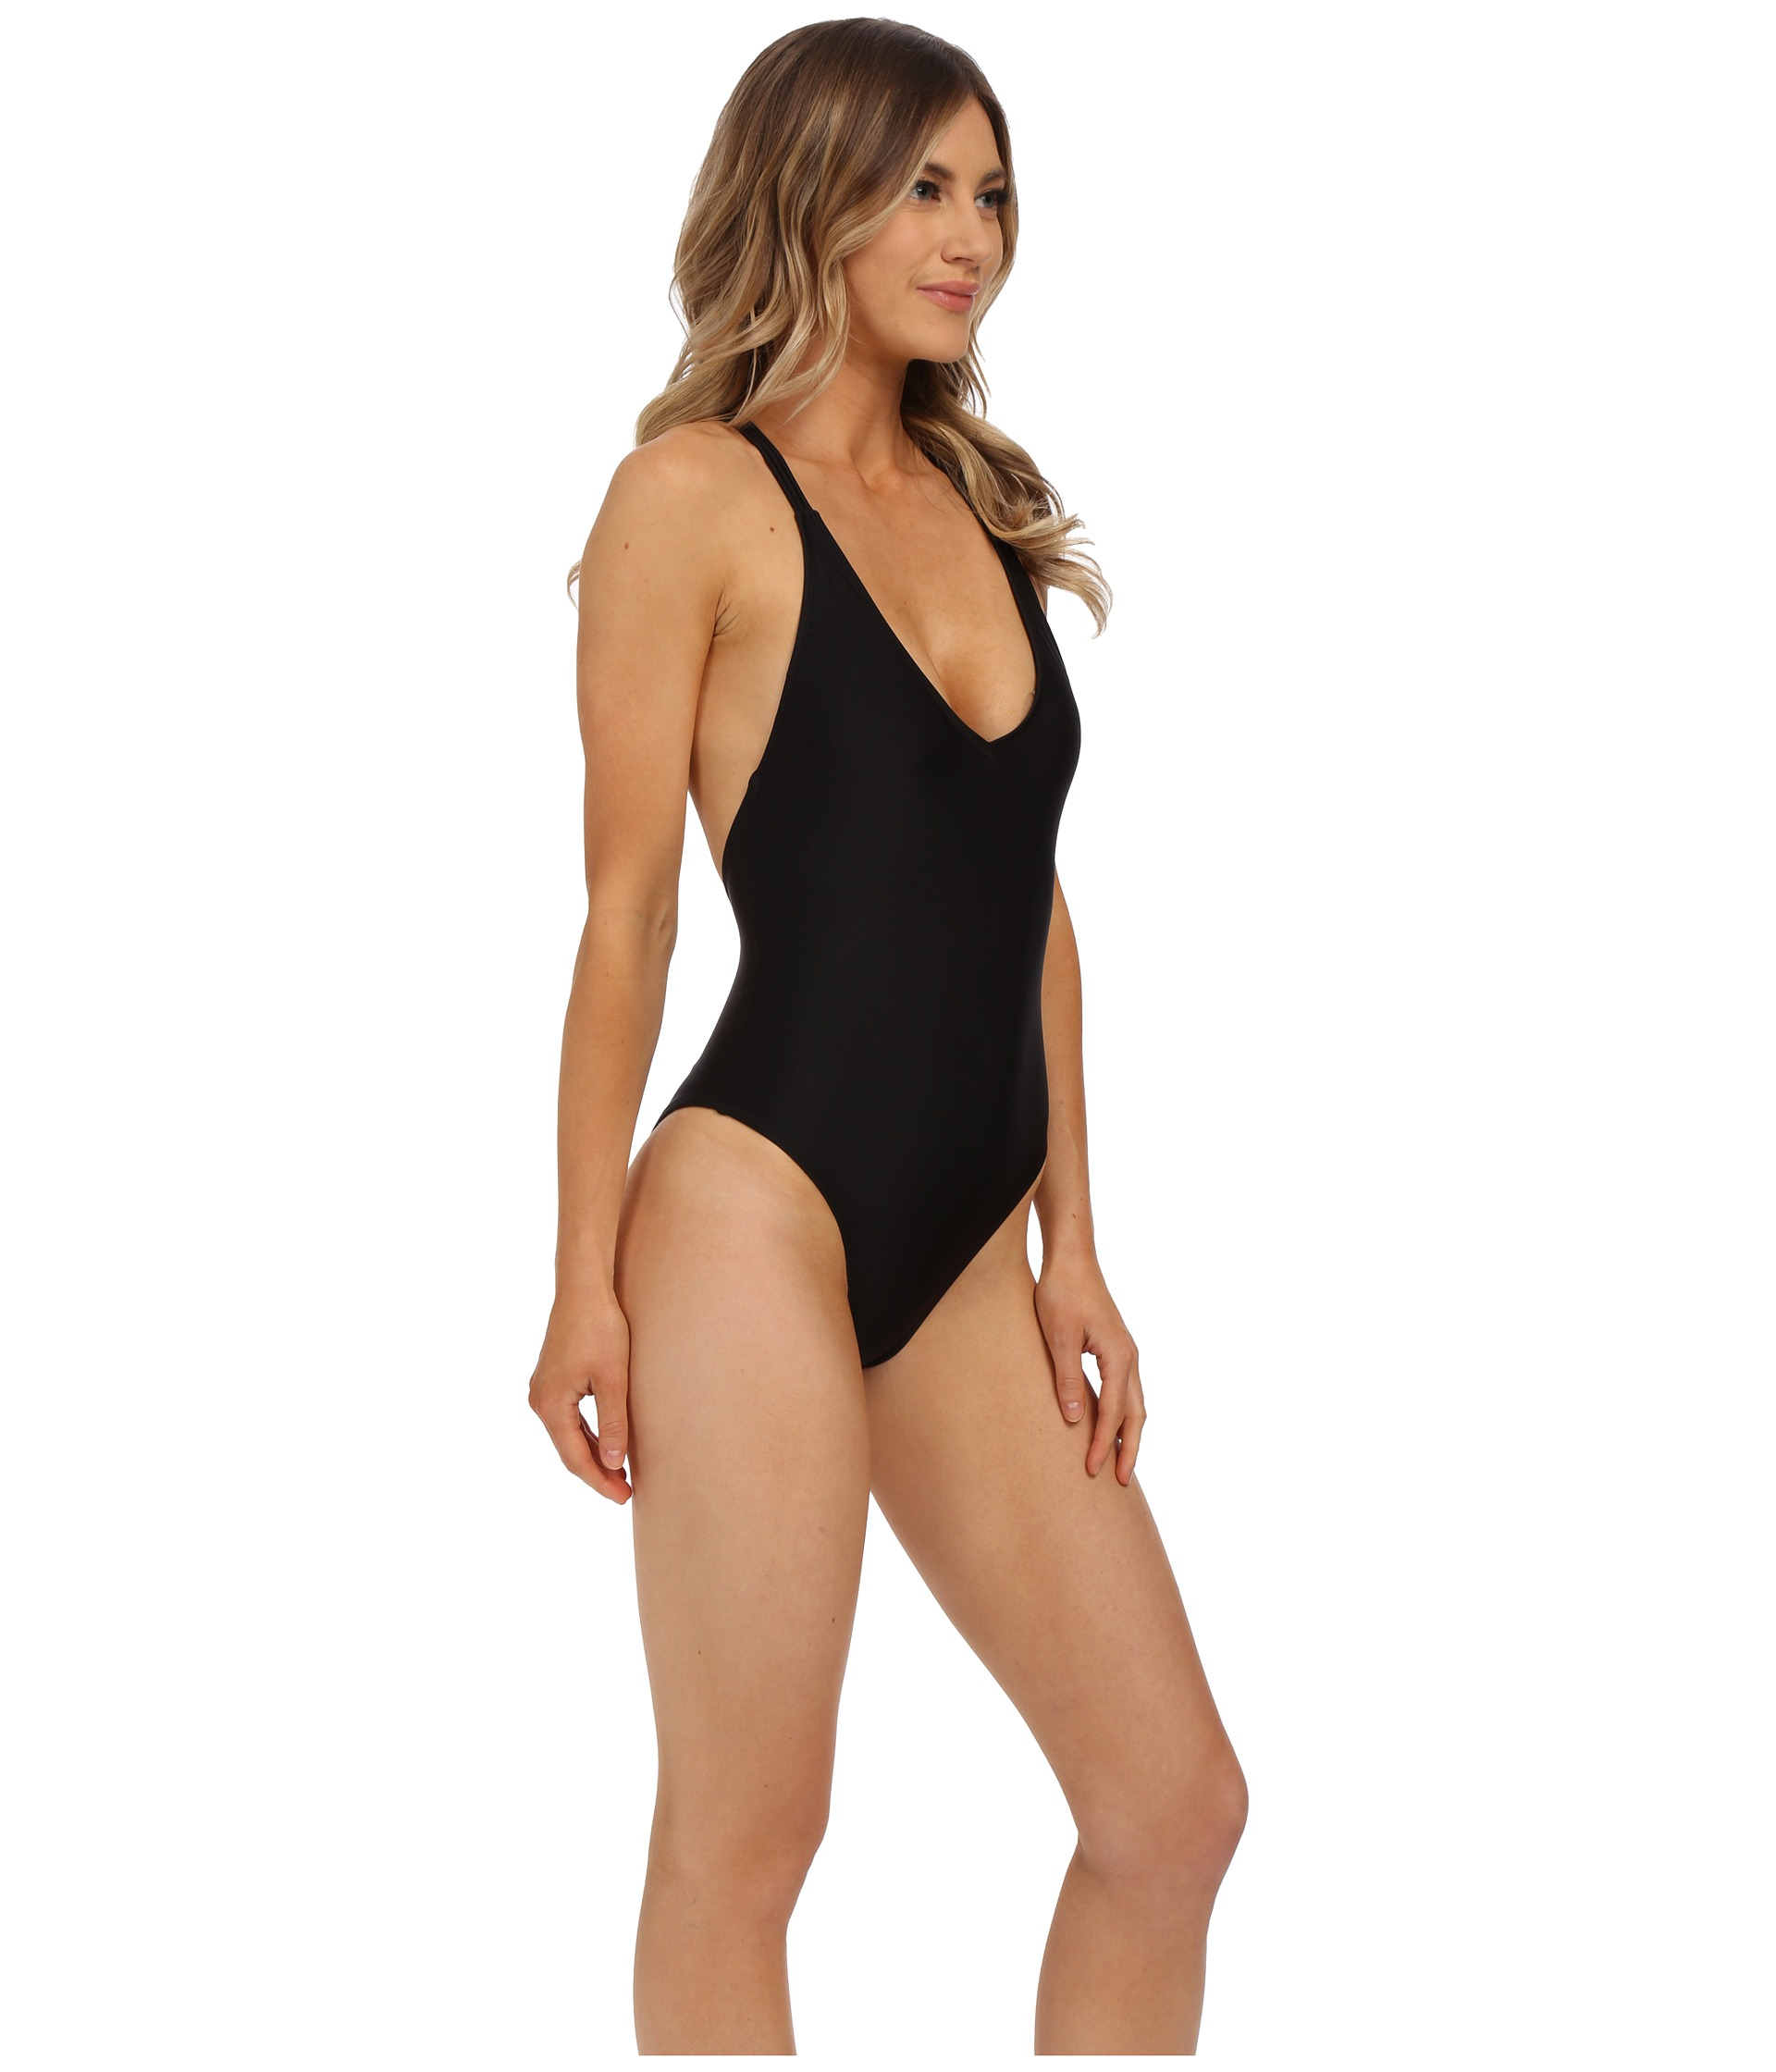 44054232c30ec Volcom Simply Solid One-piece Swimsuit in Black - Lyst